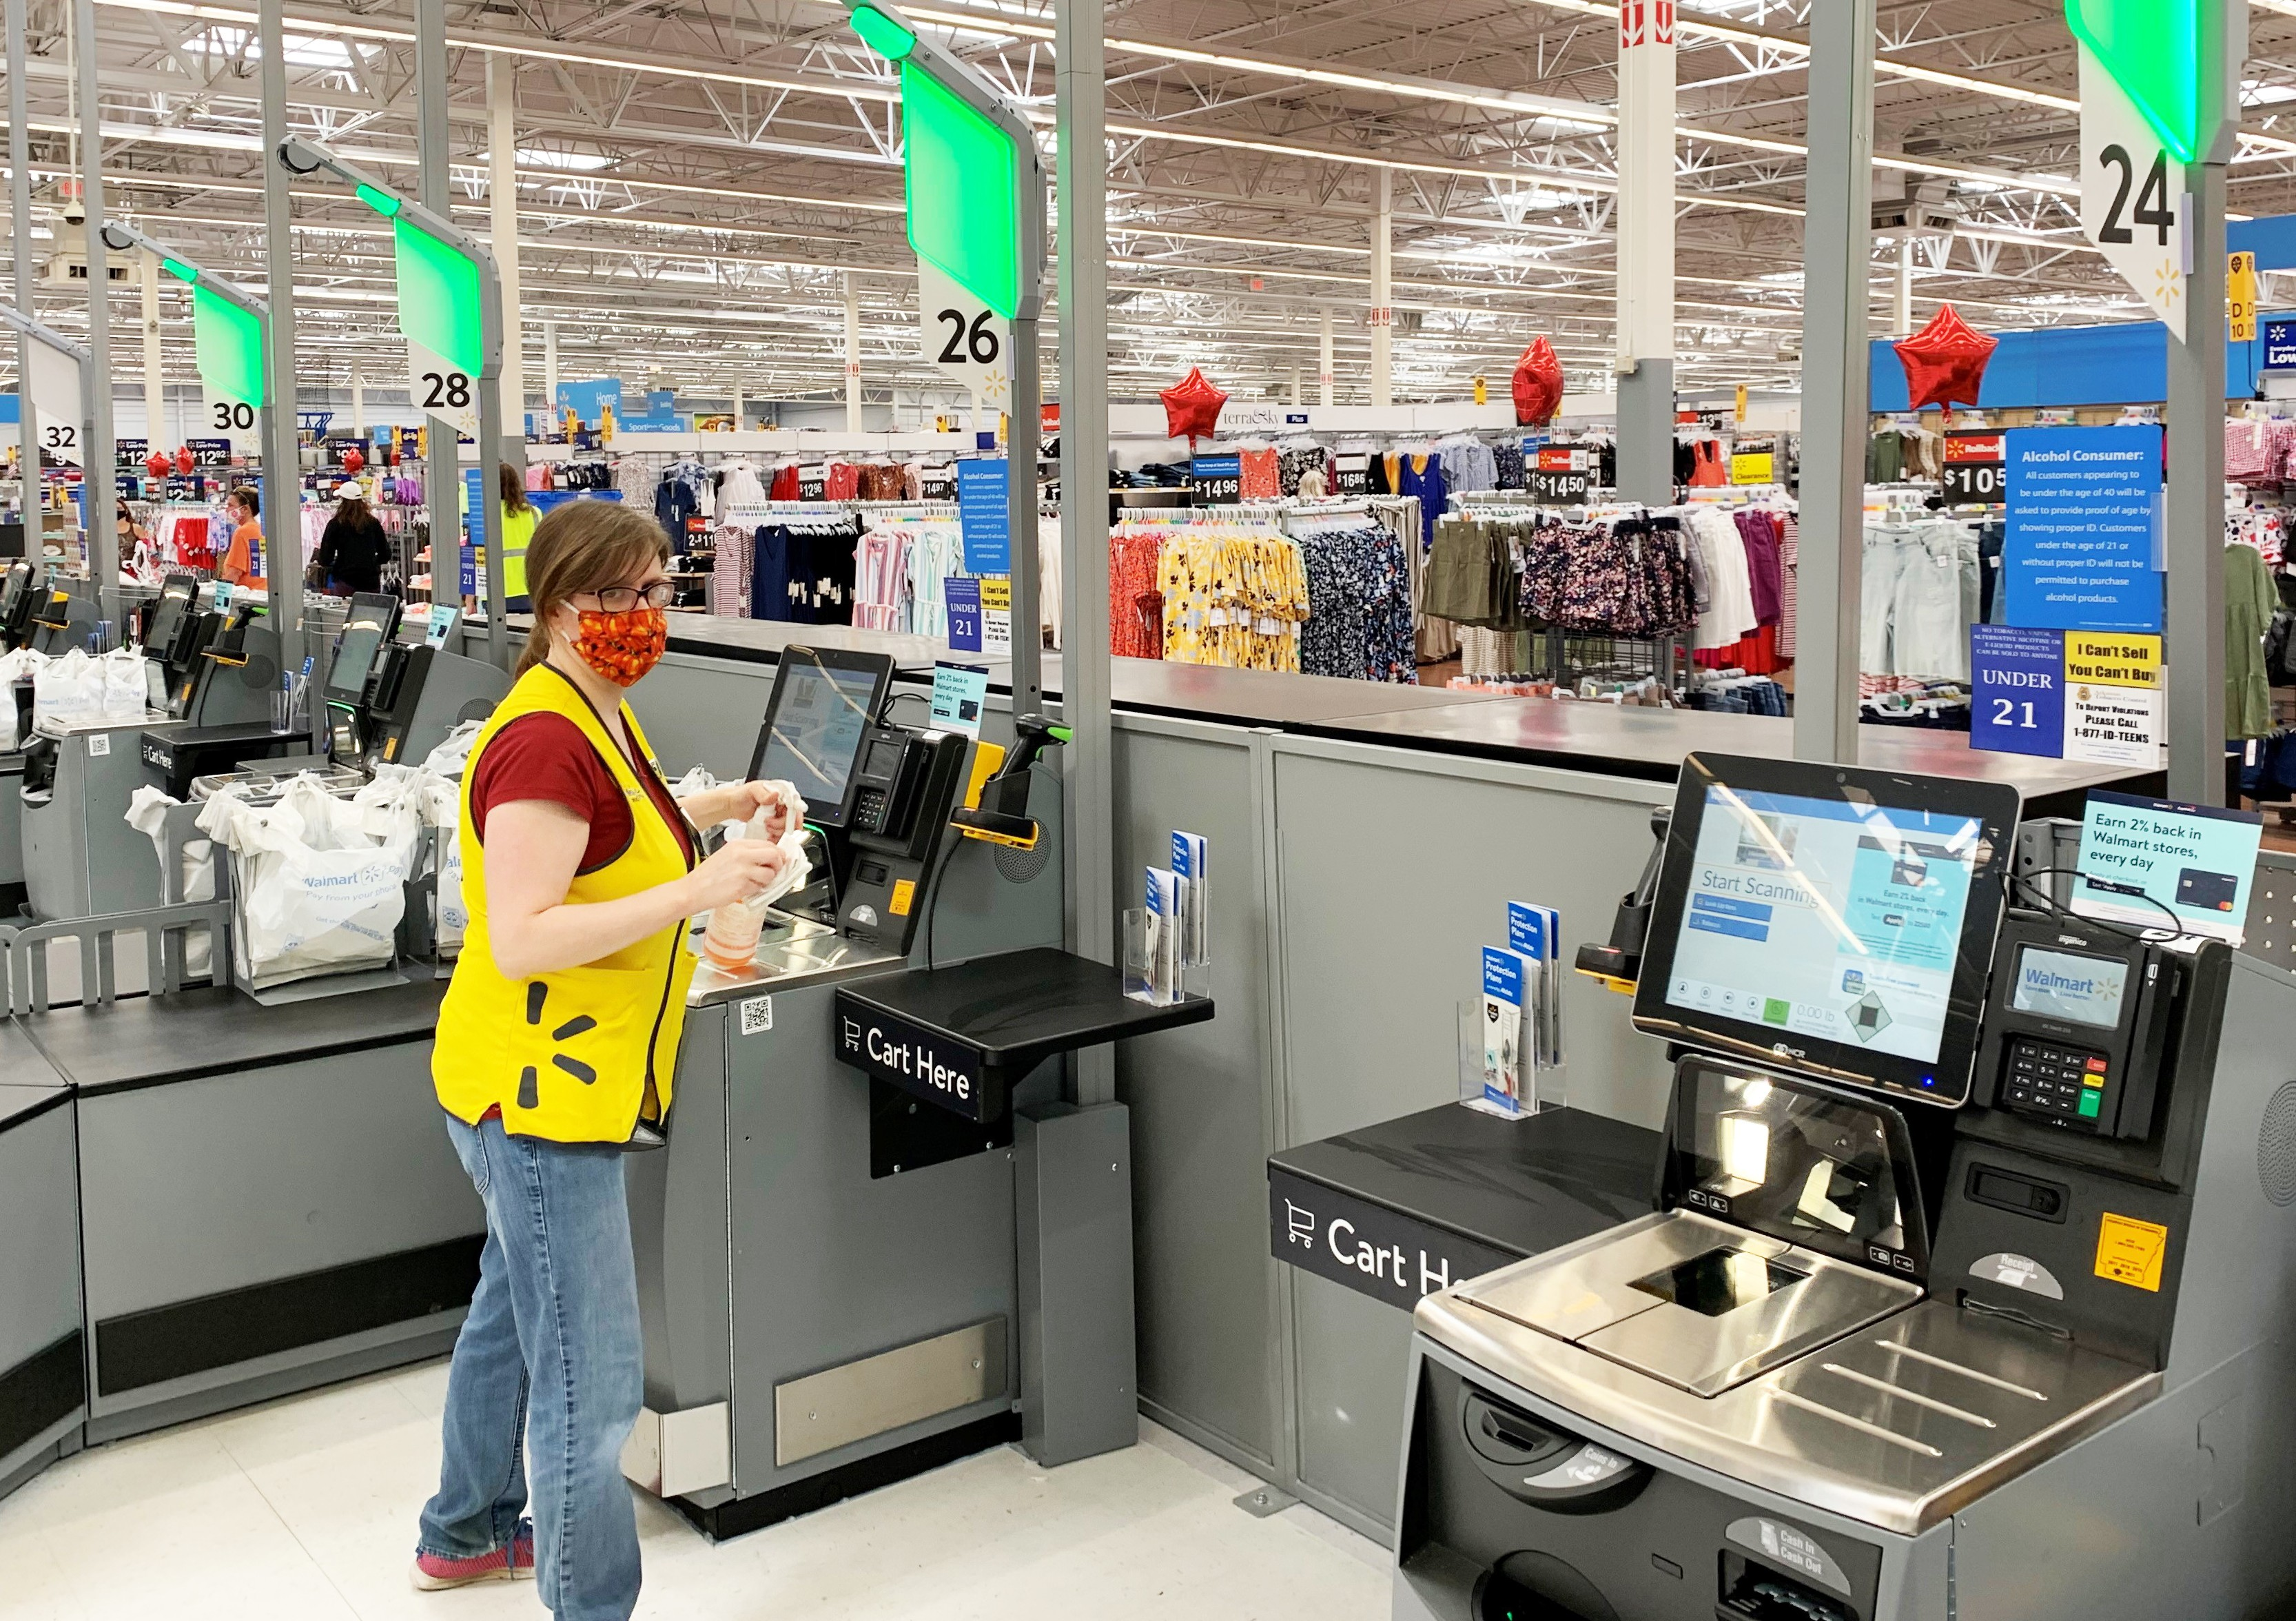 Associate in mask cleaning self checkout